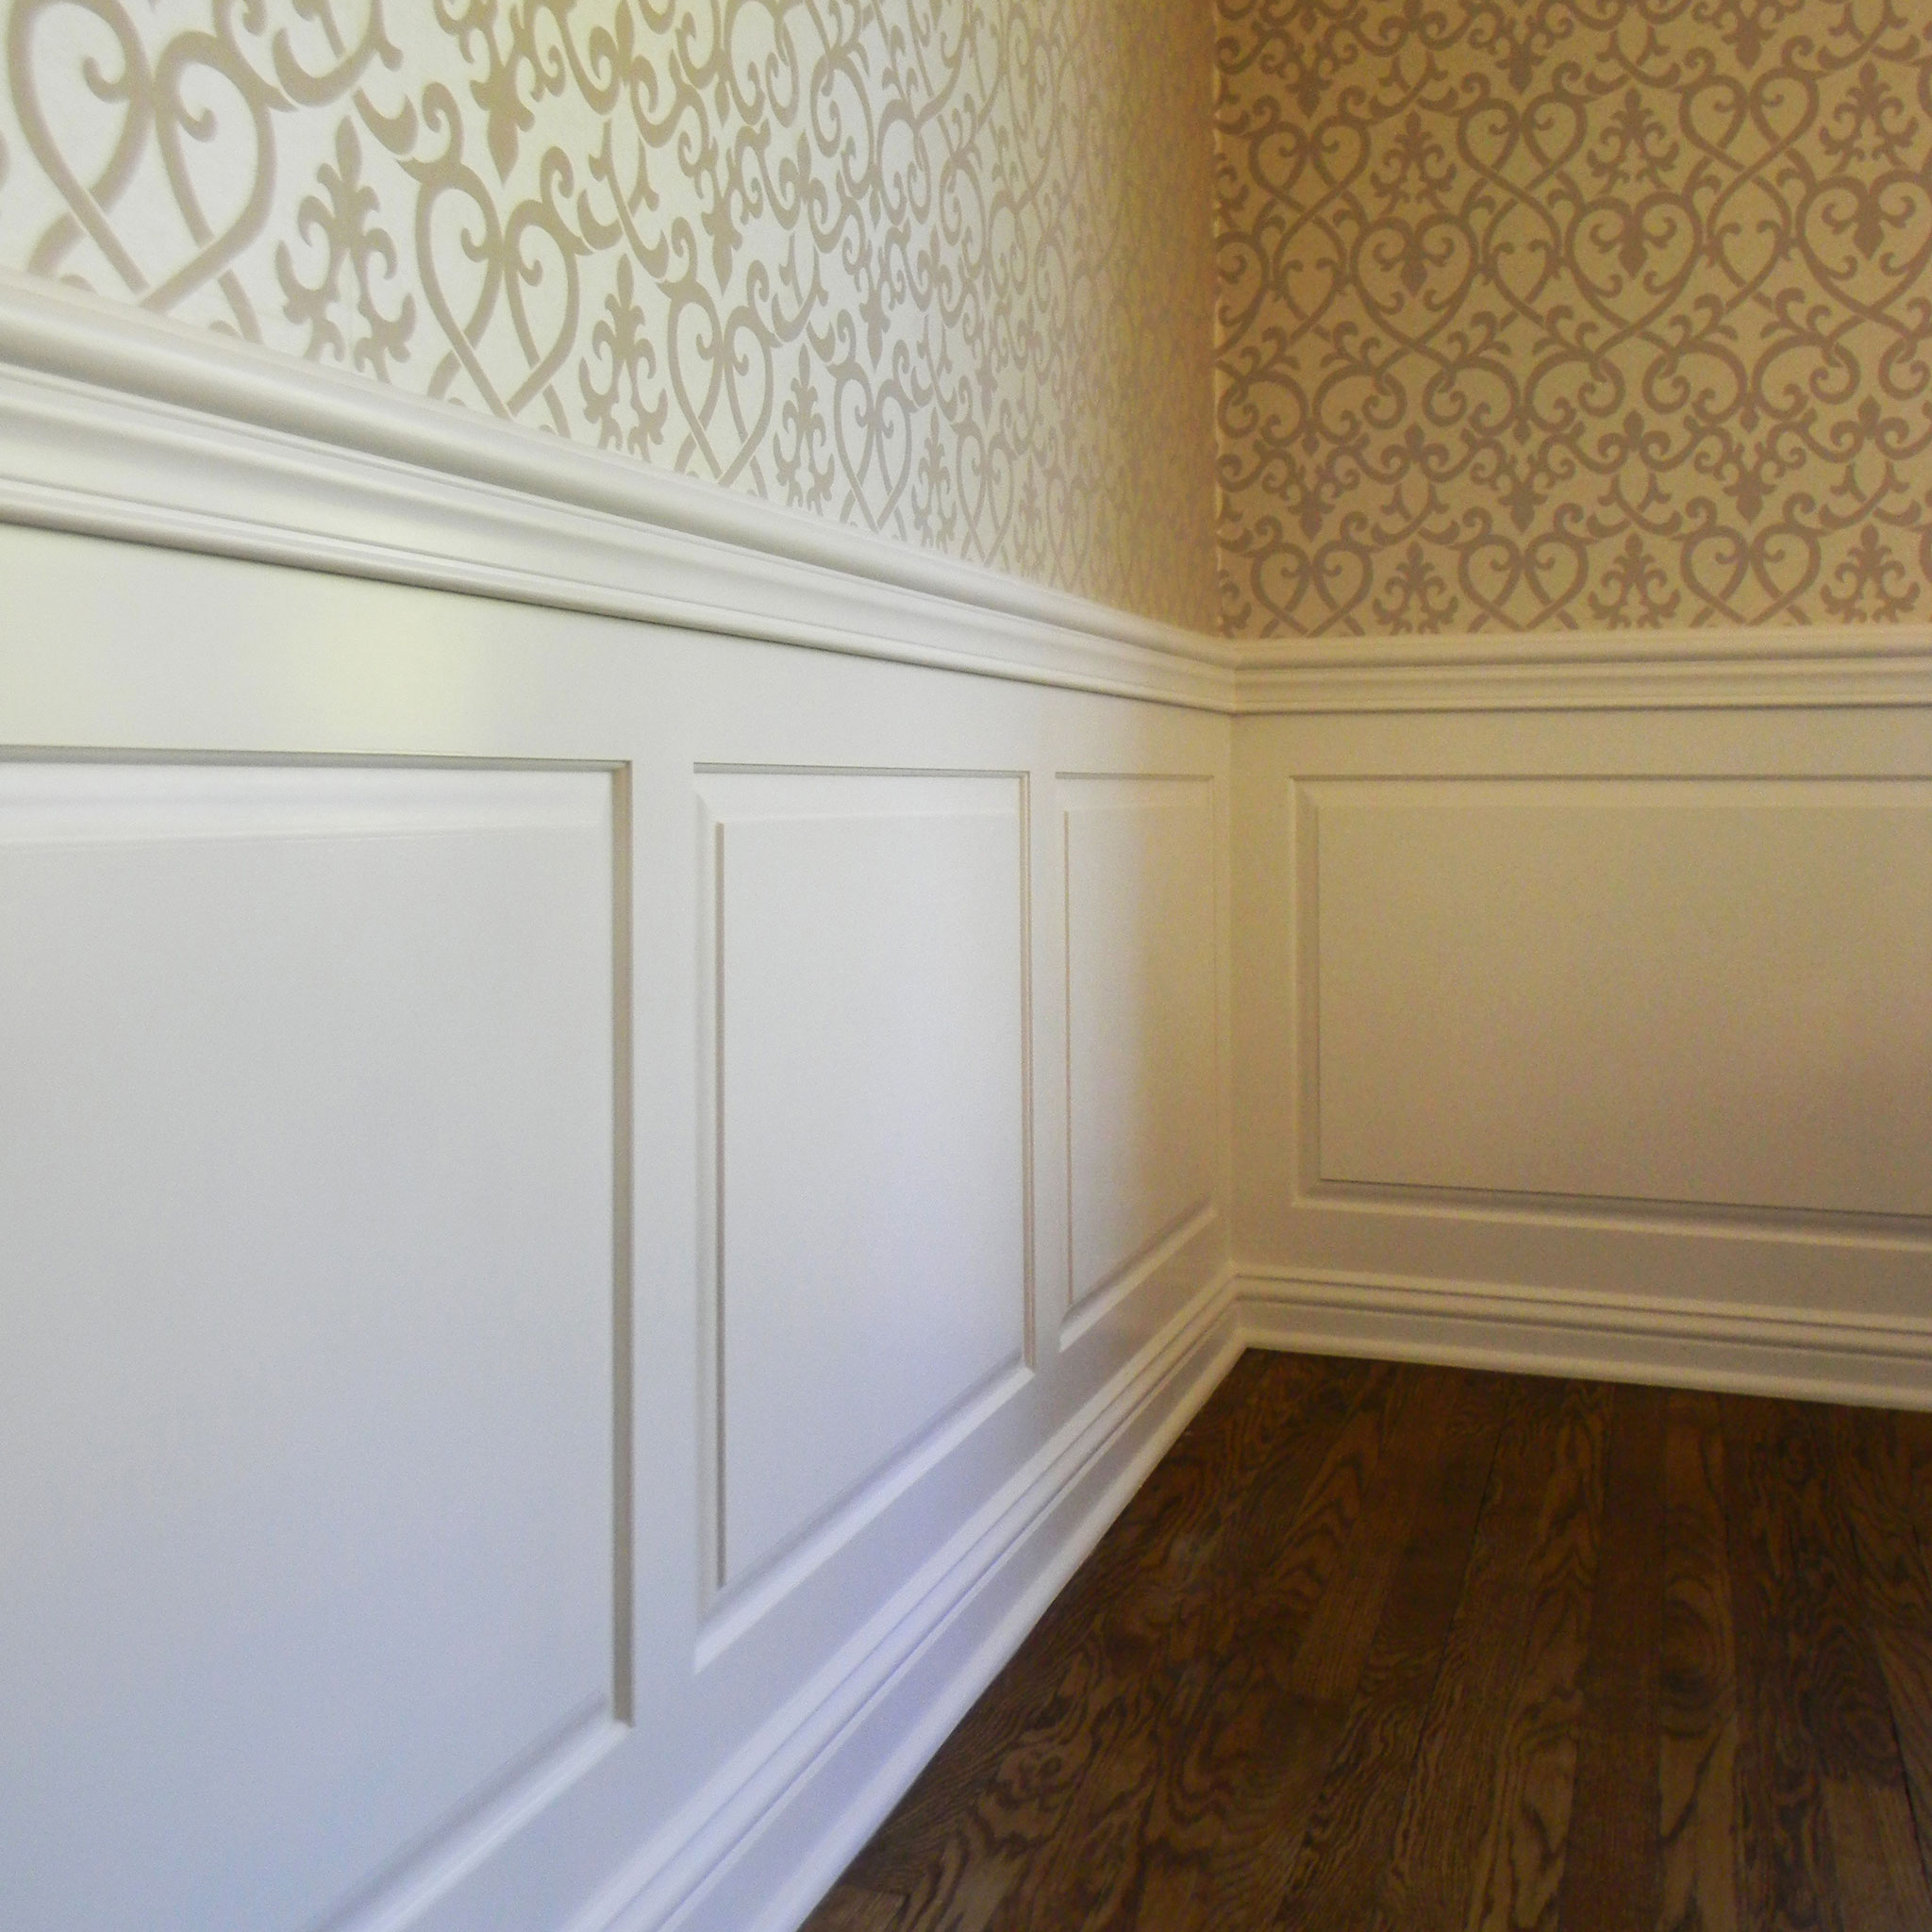 trim with molding list htm how fix decorative articles and decor s wall angie issues moldings to